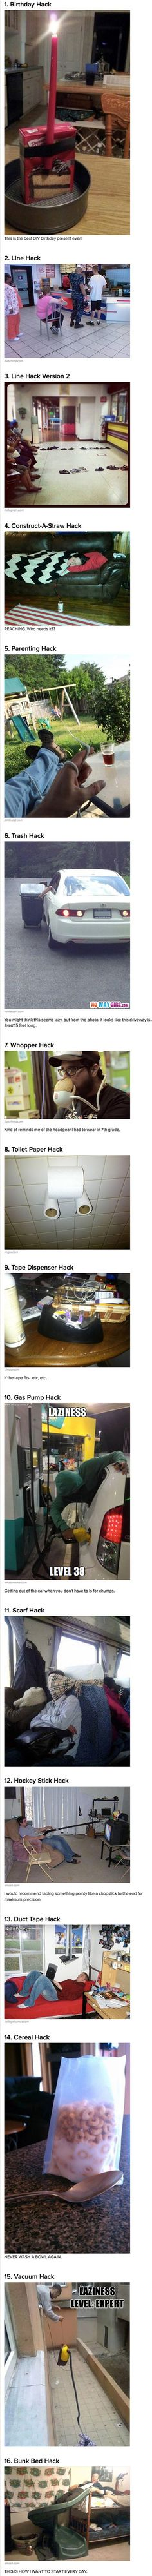 We have rounded up some of the laziest life hacks in the world, captured by geeks.